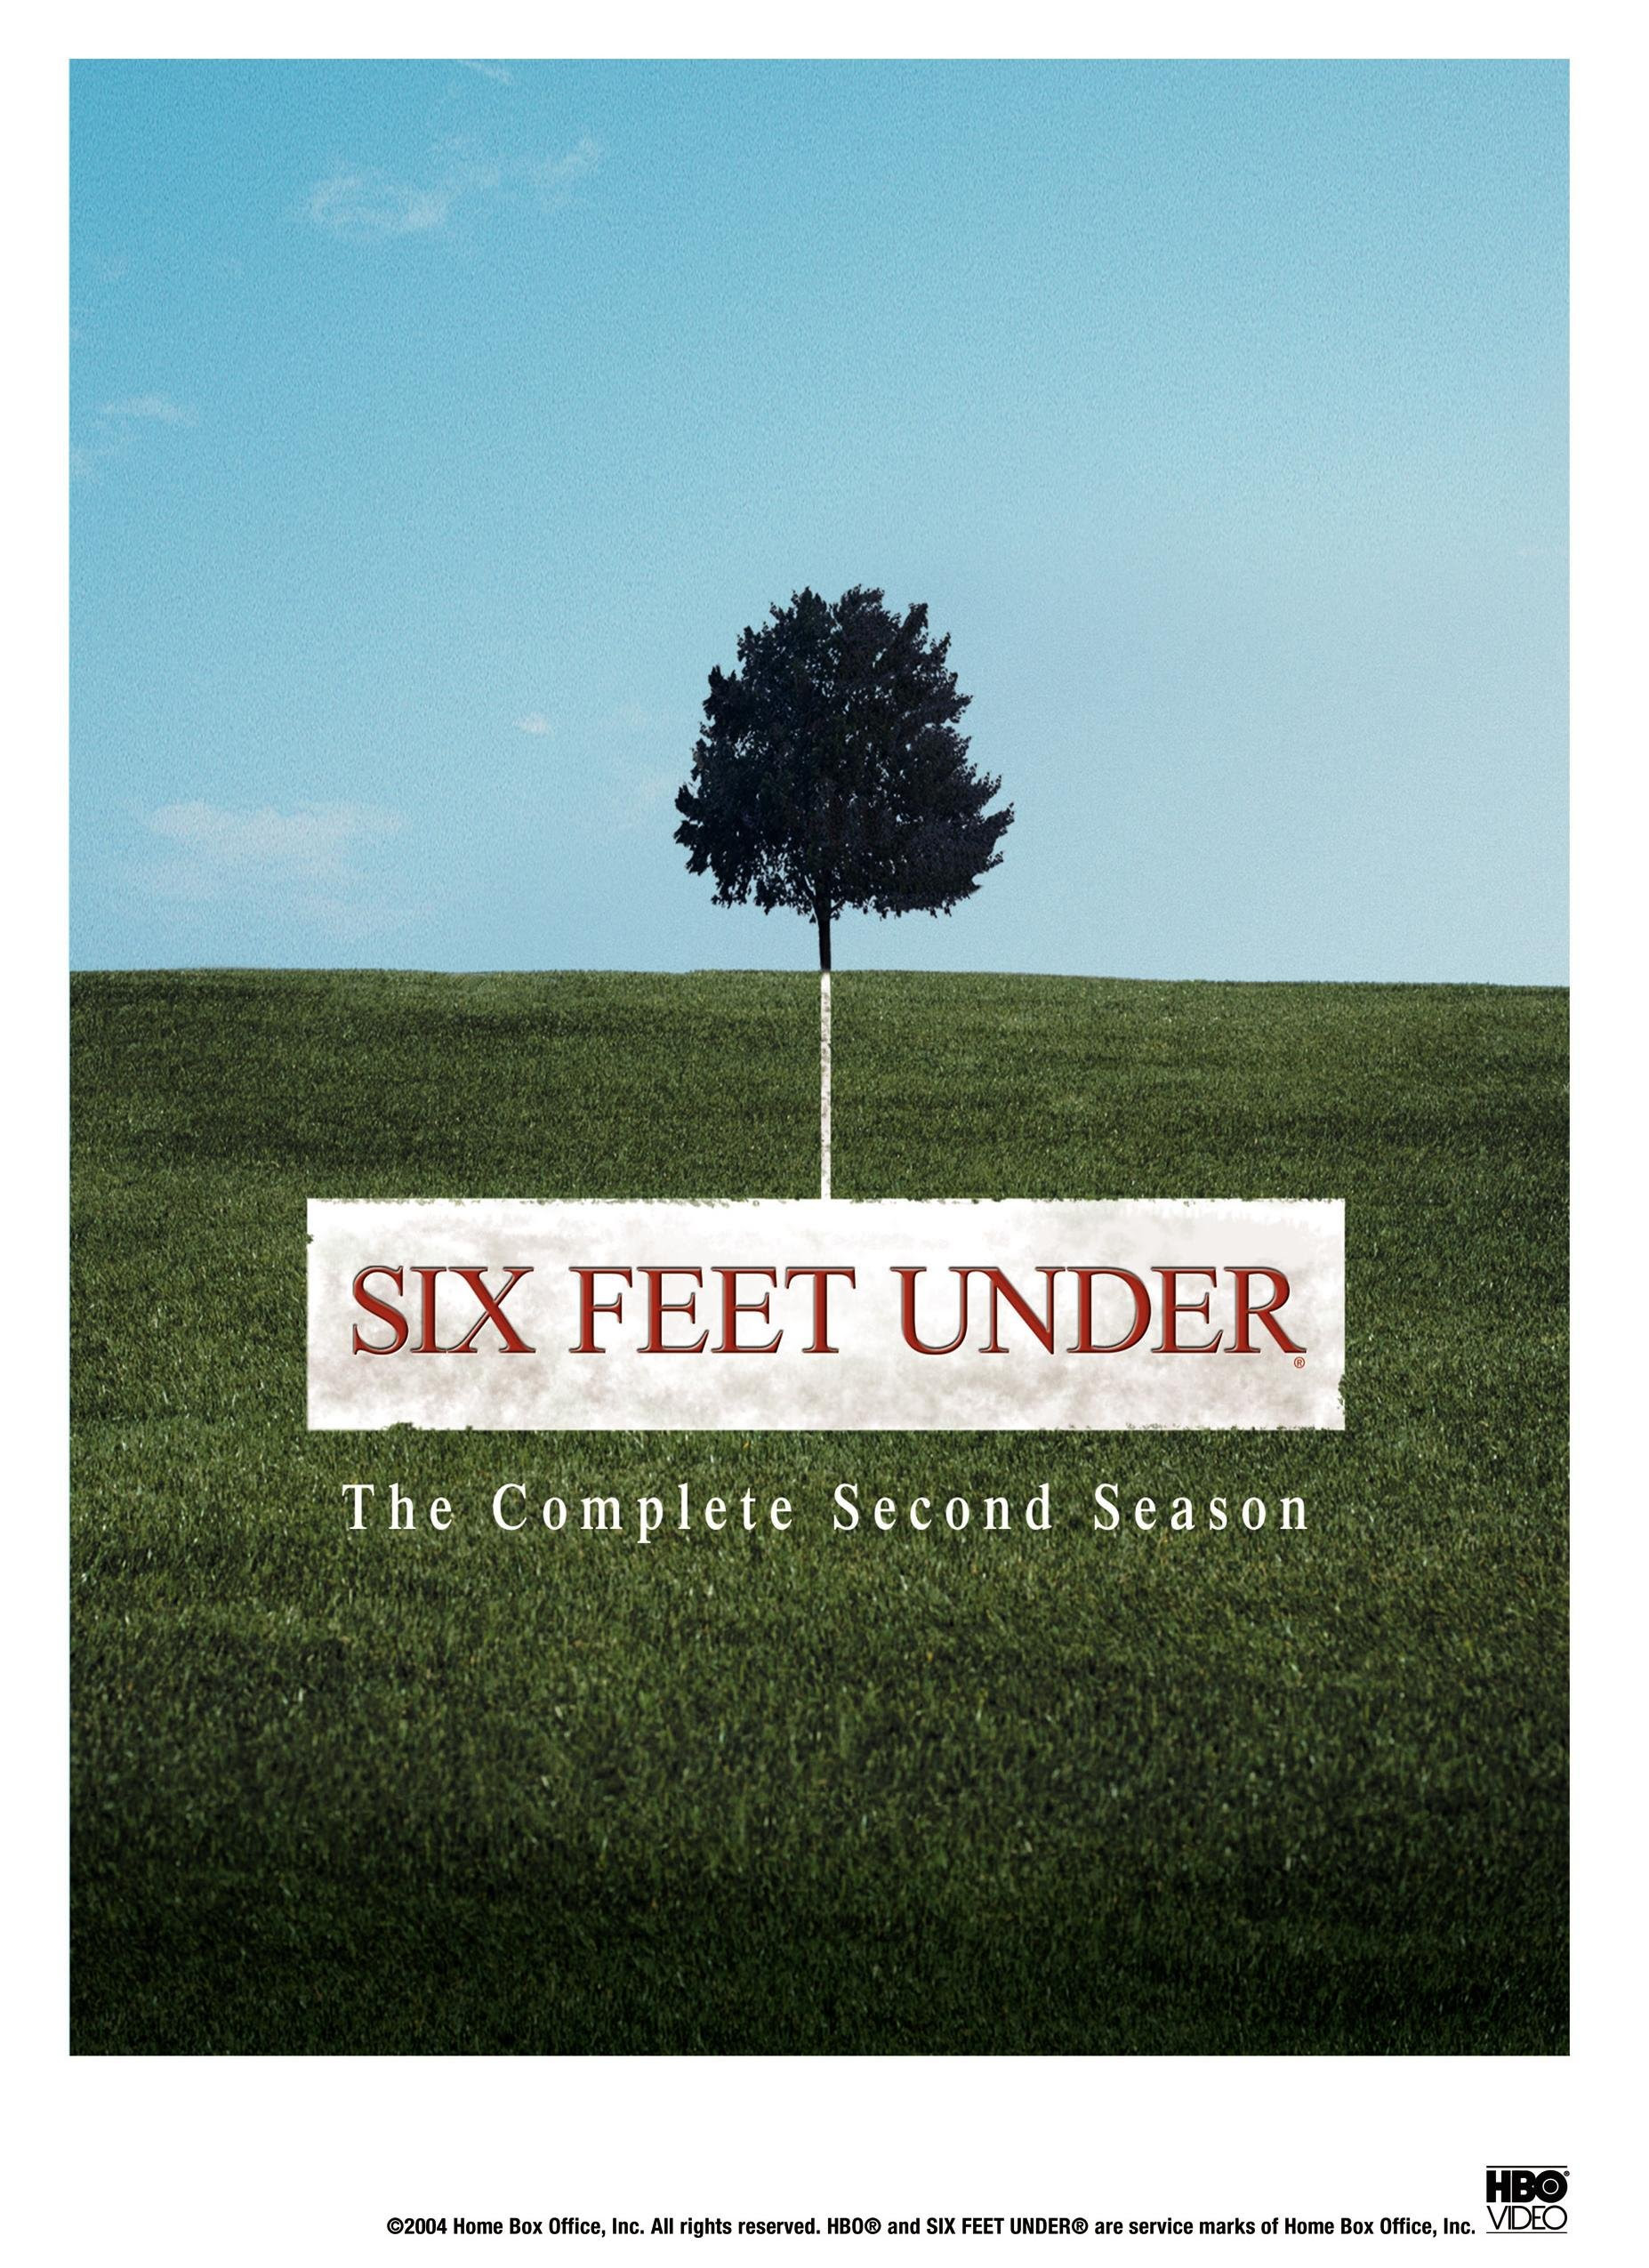 http://www.dvdsreleasedates.com/covers/six-feet-under-the-complete-second-season-dvd-cover-26.jpg